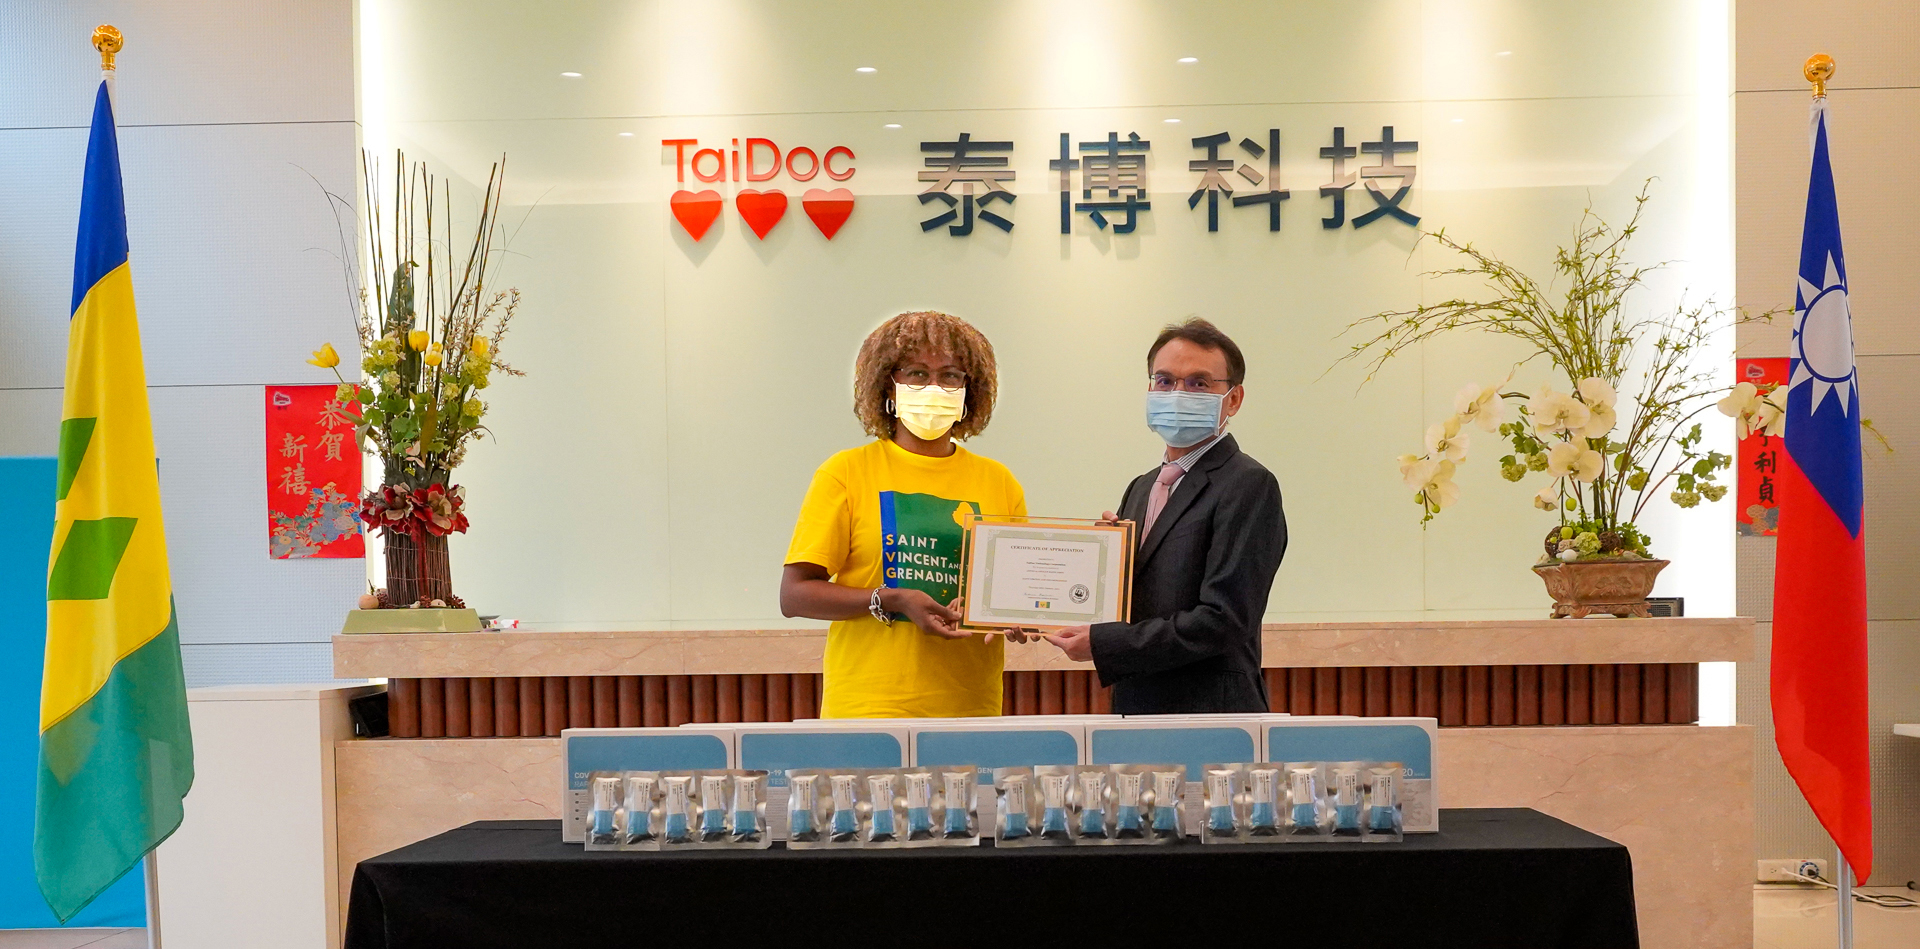 aiDoc Technology Corp. (TaiDoc) and Ambassador Andrea Bowman of the Embassy of Saint Vincent and the Grenadines in the Republic of China/Taiwan, reached an agreement on the purchasing of 10,000 antigen rapid tests manufactured by TaiDoc.